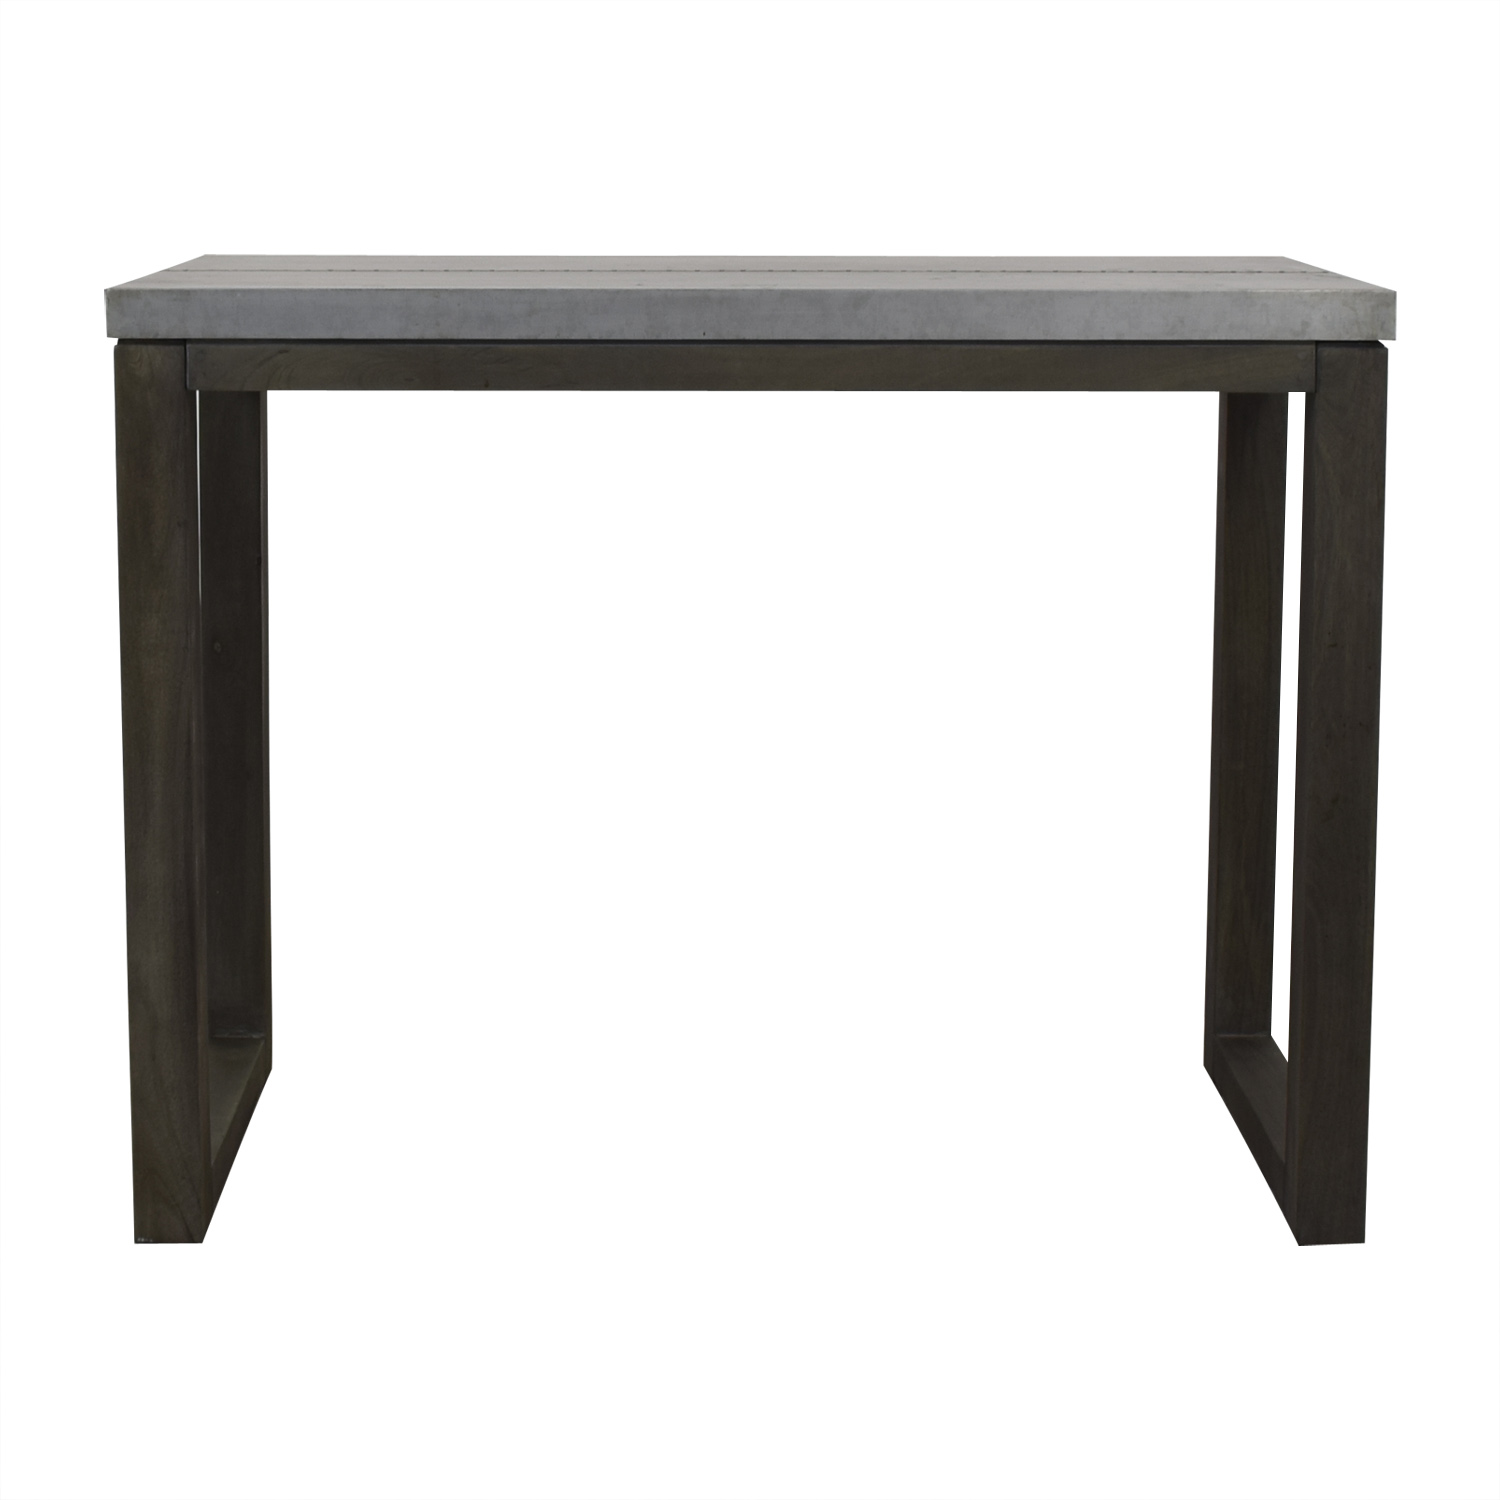 buy CB2 Stern Counter Table CB2 Dinner Tables